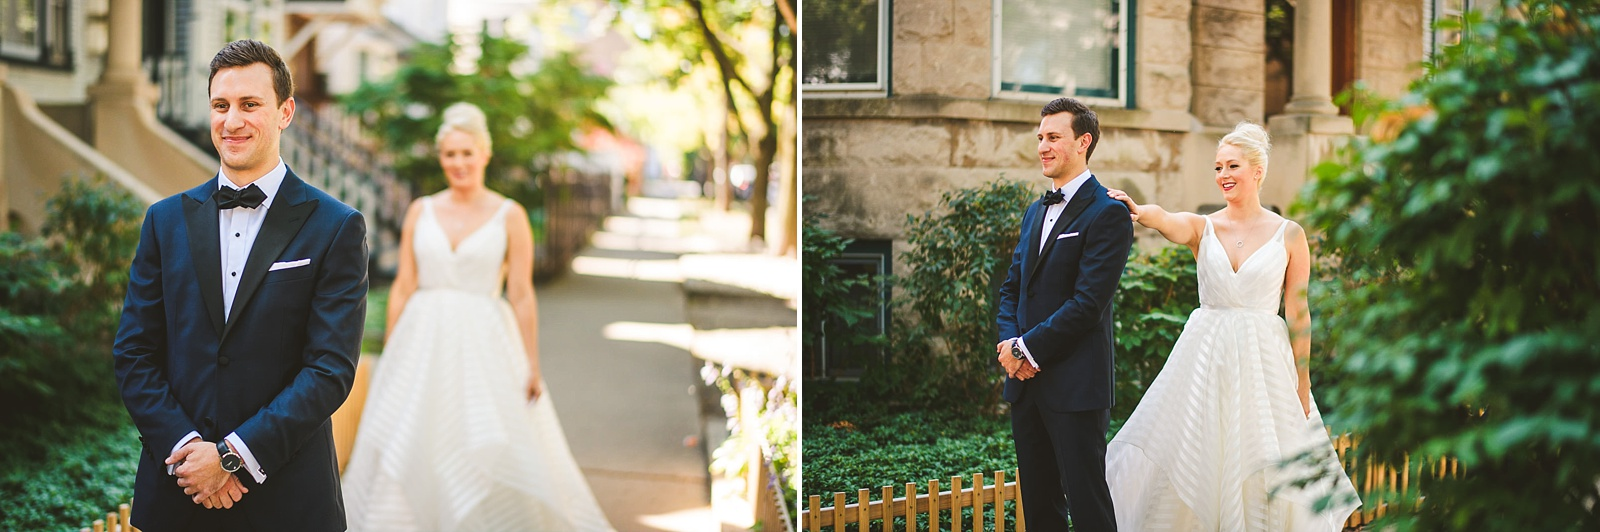 14 chicago street first look inspiration - Morgan's on Fulton Wedding Photos // Jessica + Bill